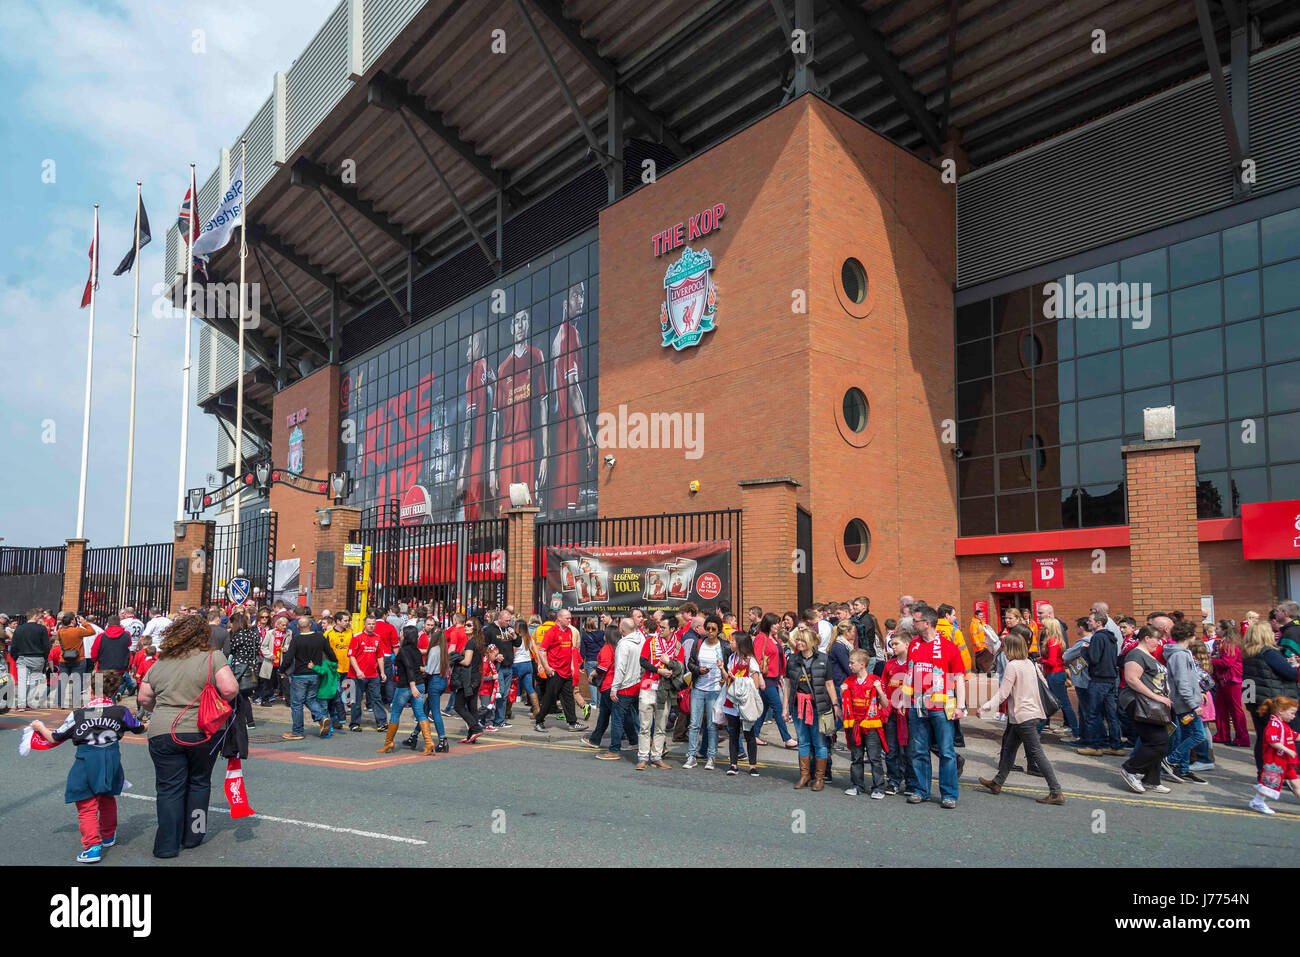 Anfield crowds at Kop stand Liverpool FC - Stock Image